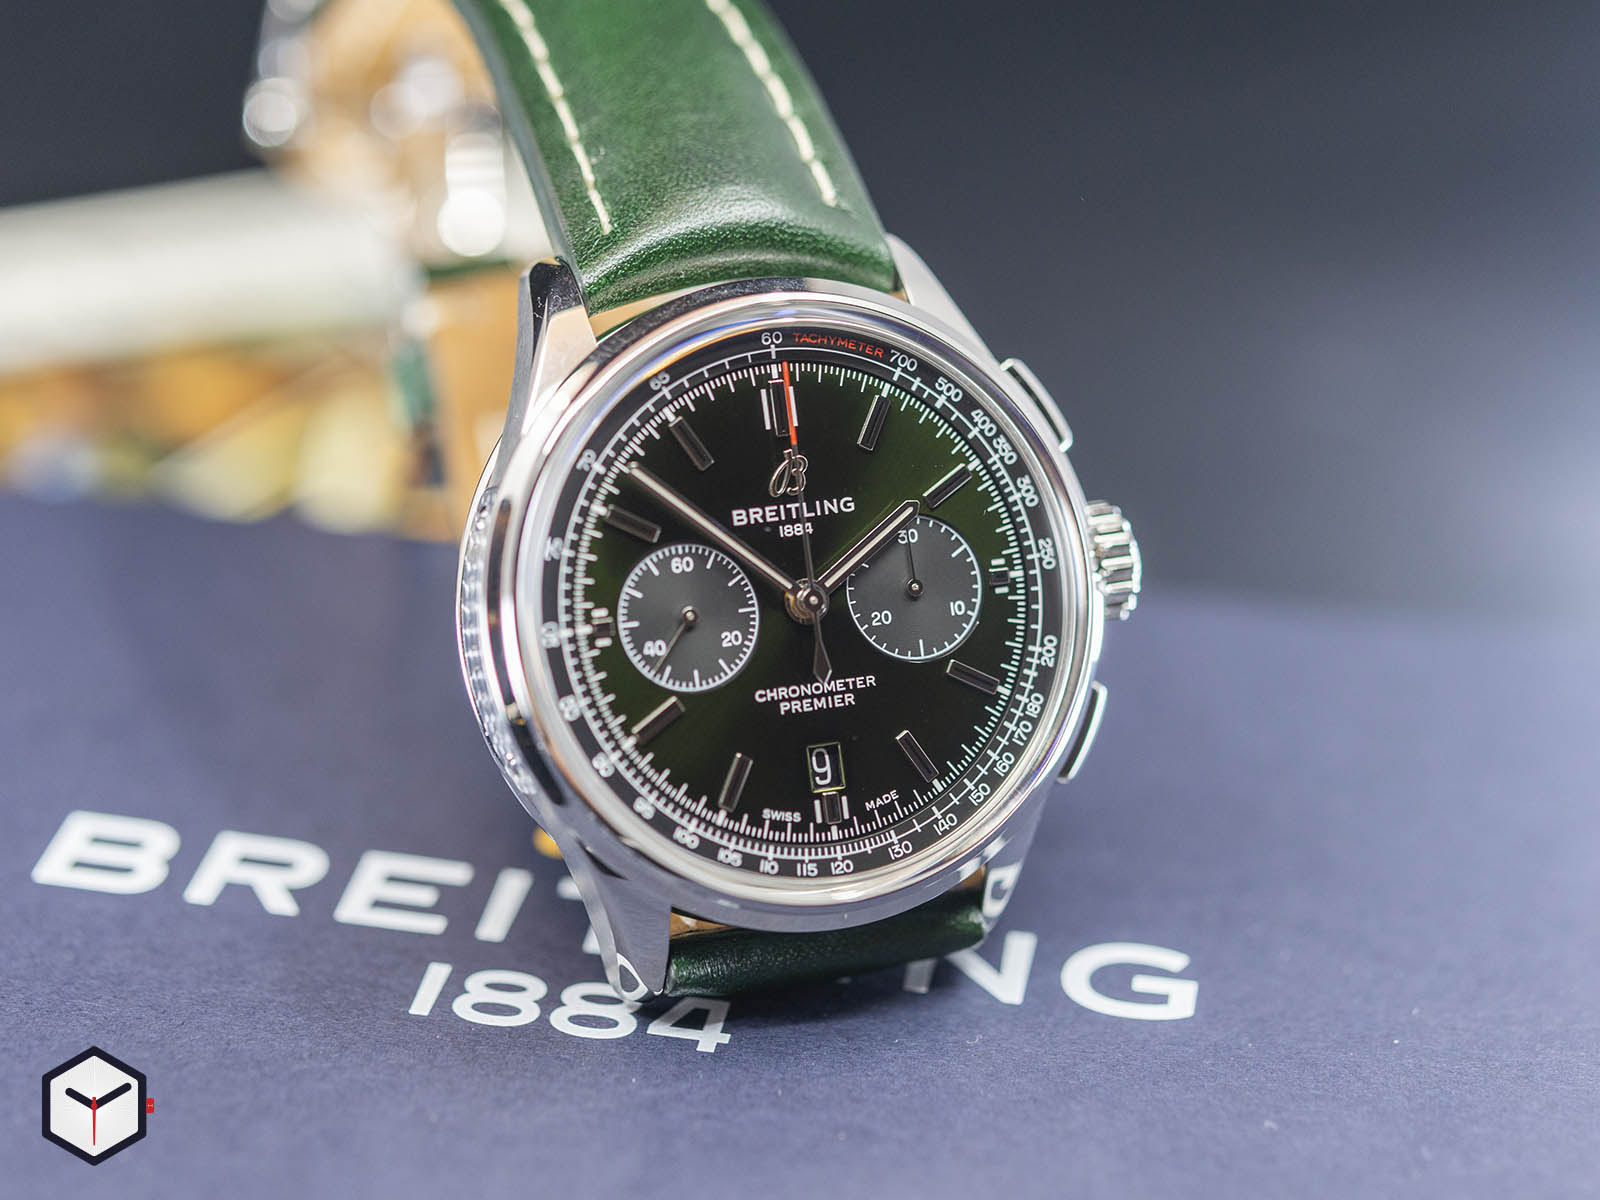 ab0118a11l1x1-breitling-premier-b01-chronograph-42-bentley-british-racing-green-3.jpg